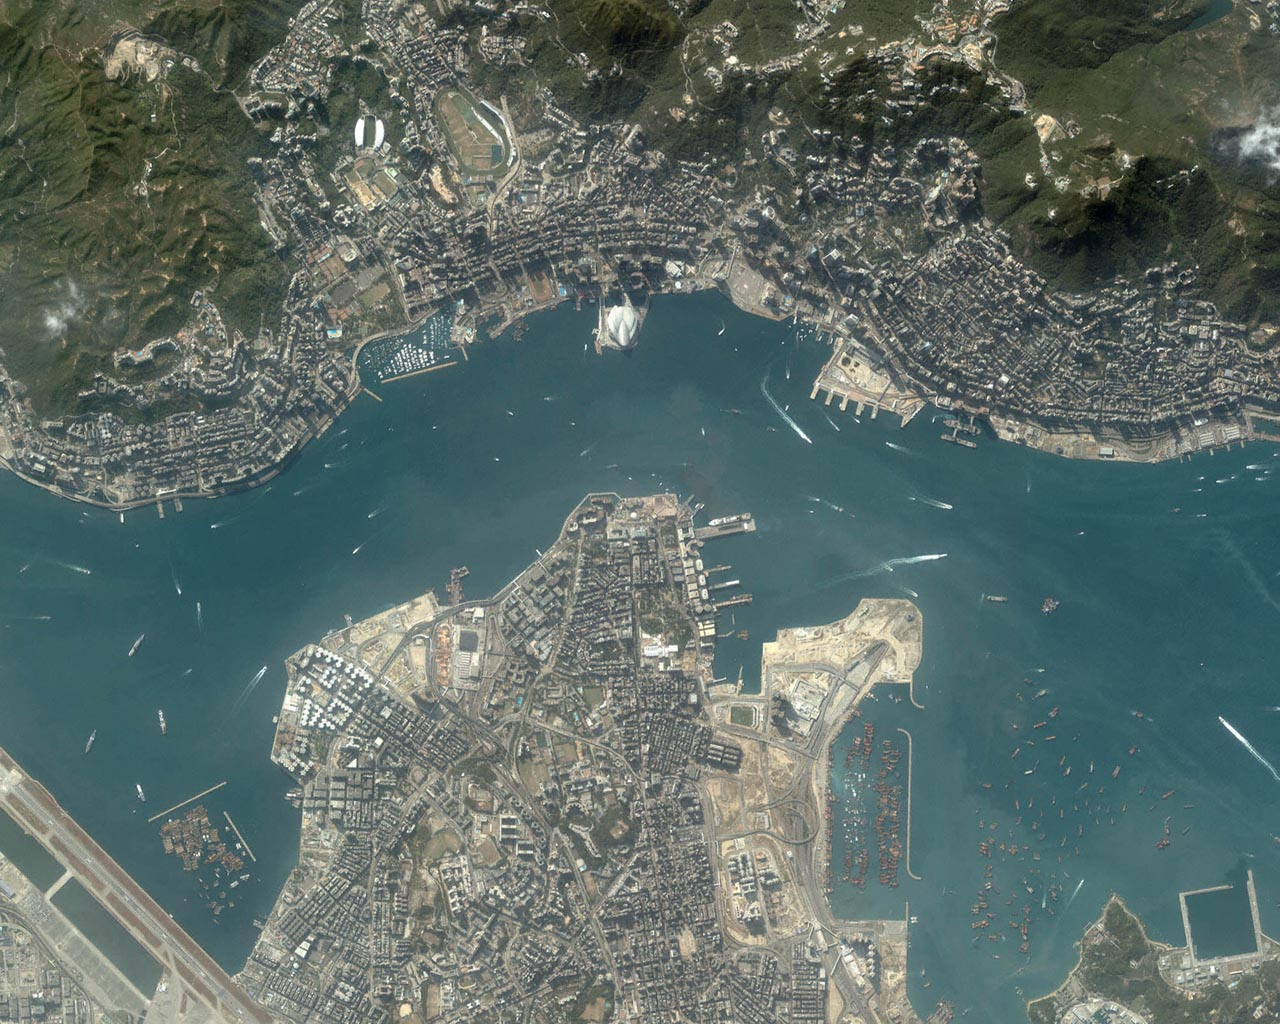 The hong kong region a great satellite image with ports and boats